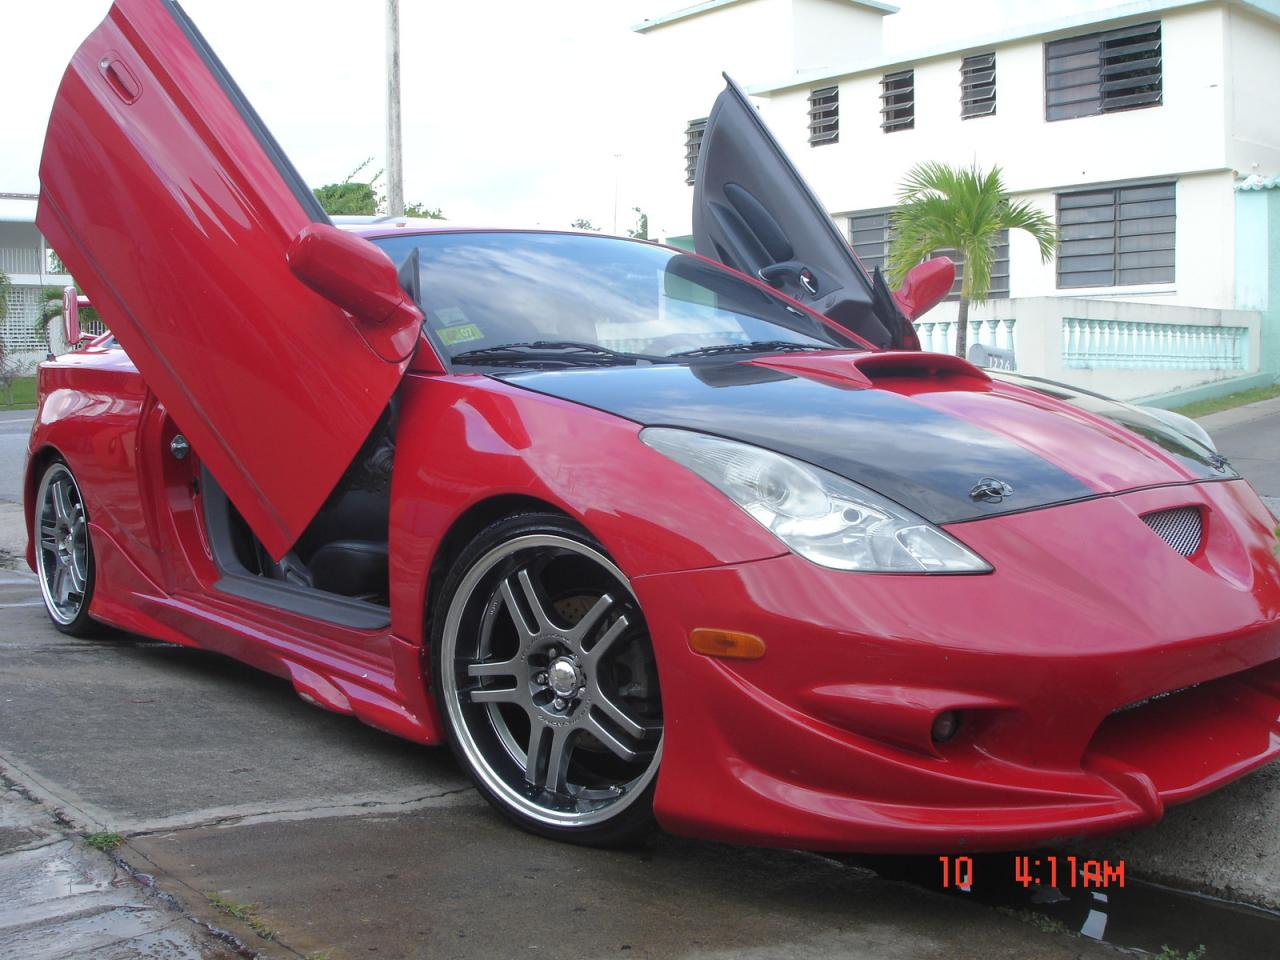 2000 toyota celica information and photos zombiedrive. Black Bedroom Furniture Sets. Home Design Ideas